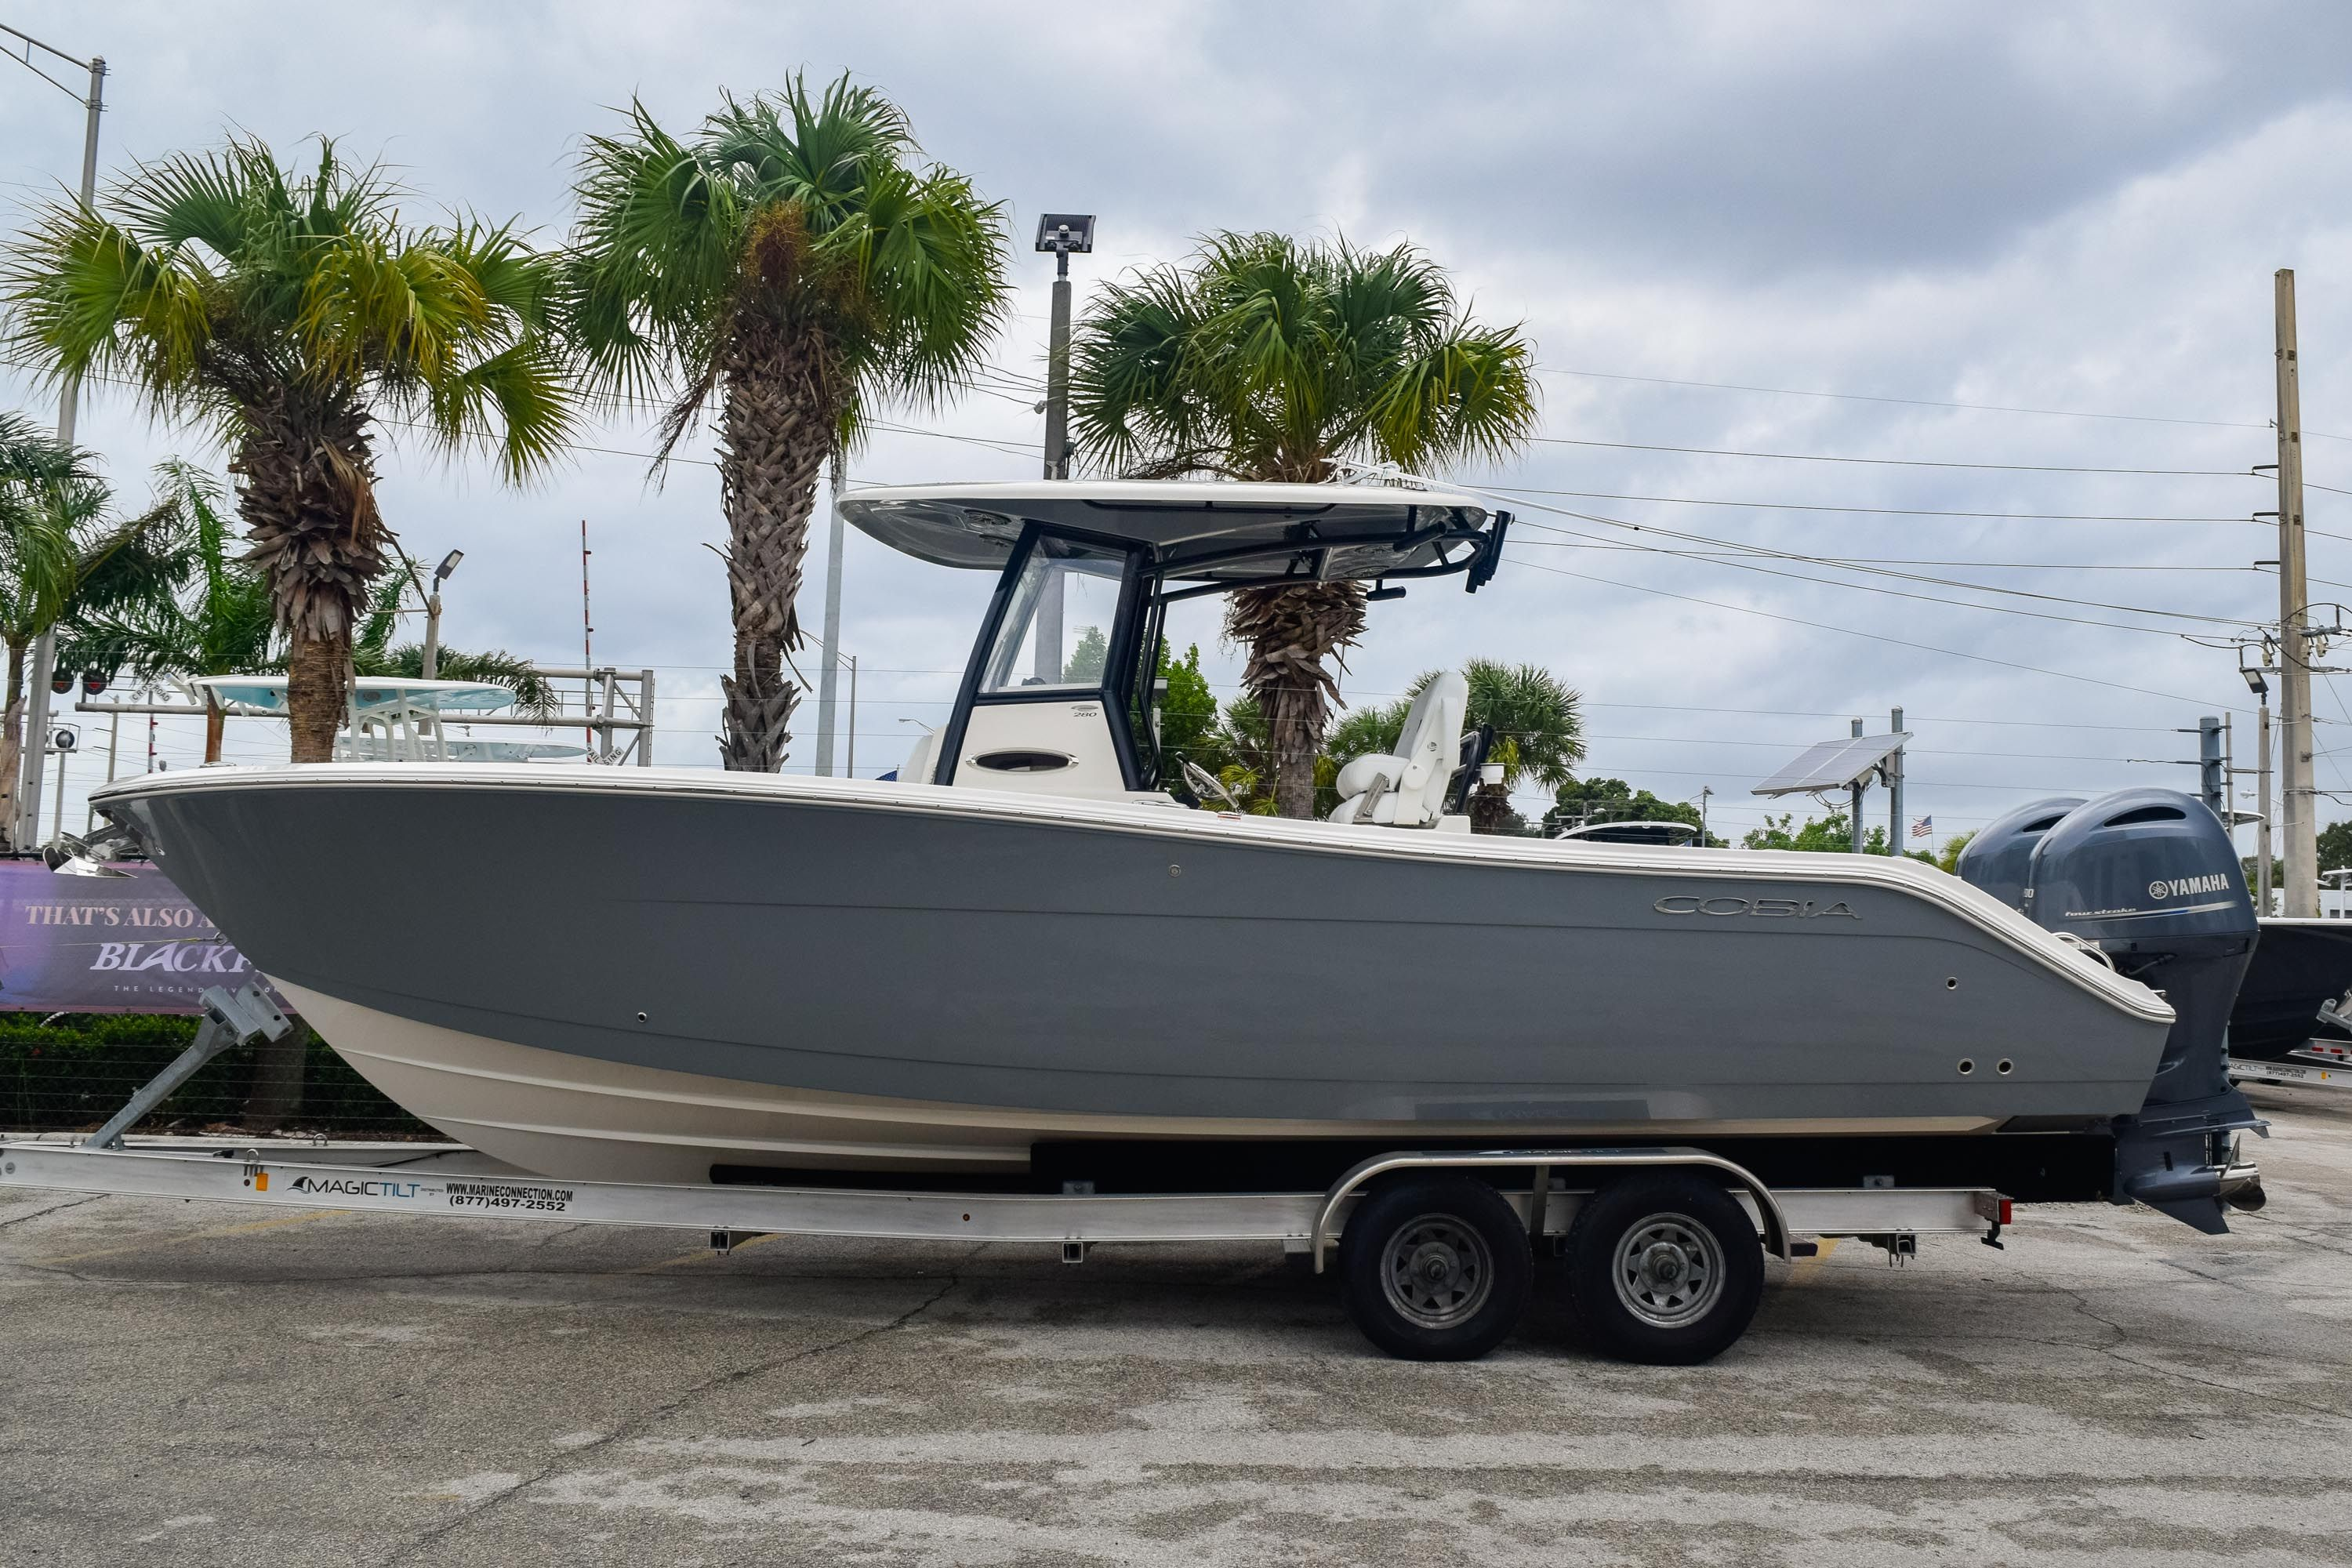 Thumbnail 4 for New 2020 Cobia 280 CC Center Console boat for sale in Fort Lauderdale, FL